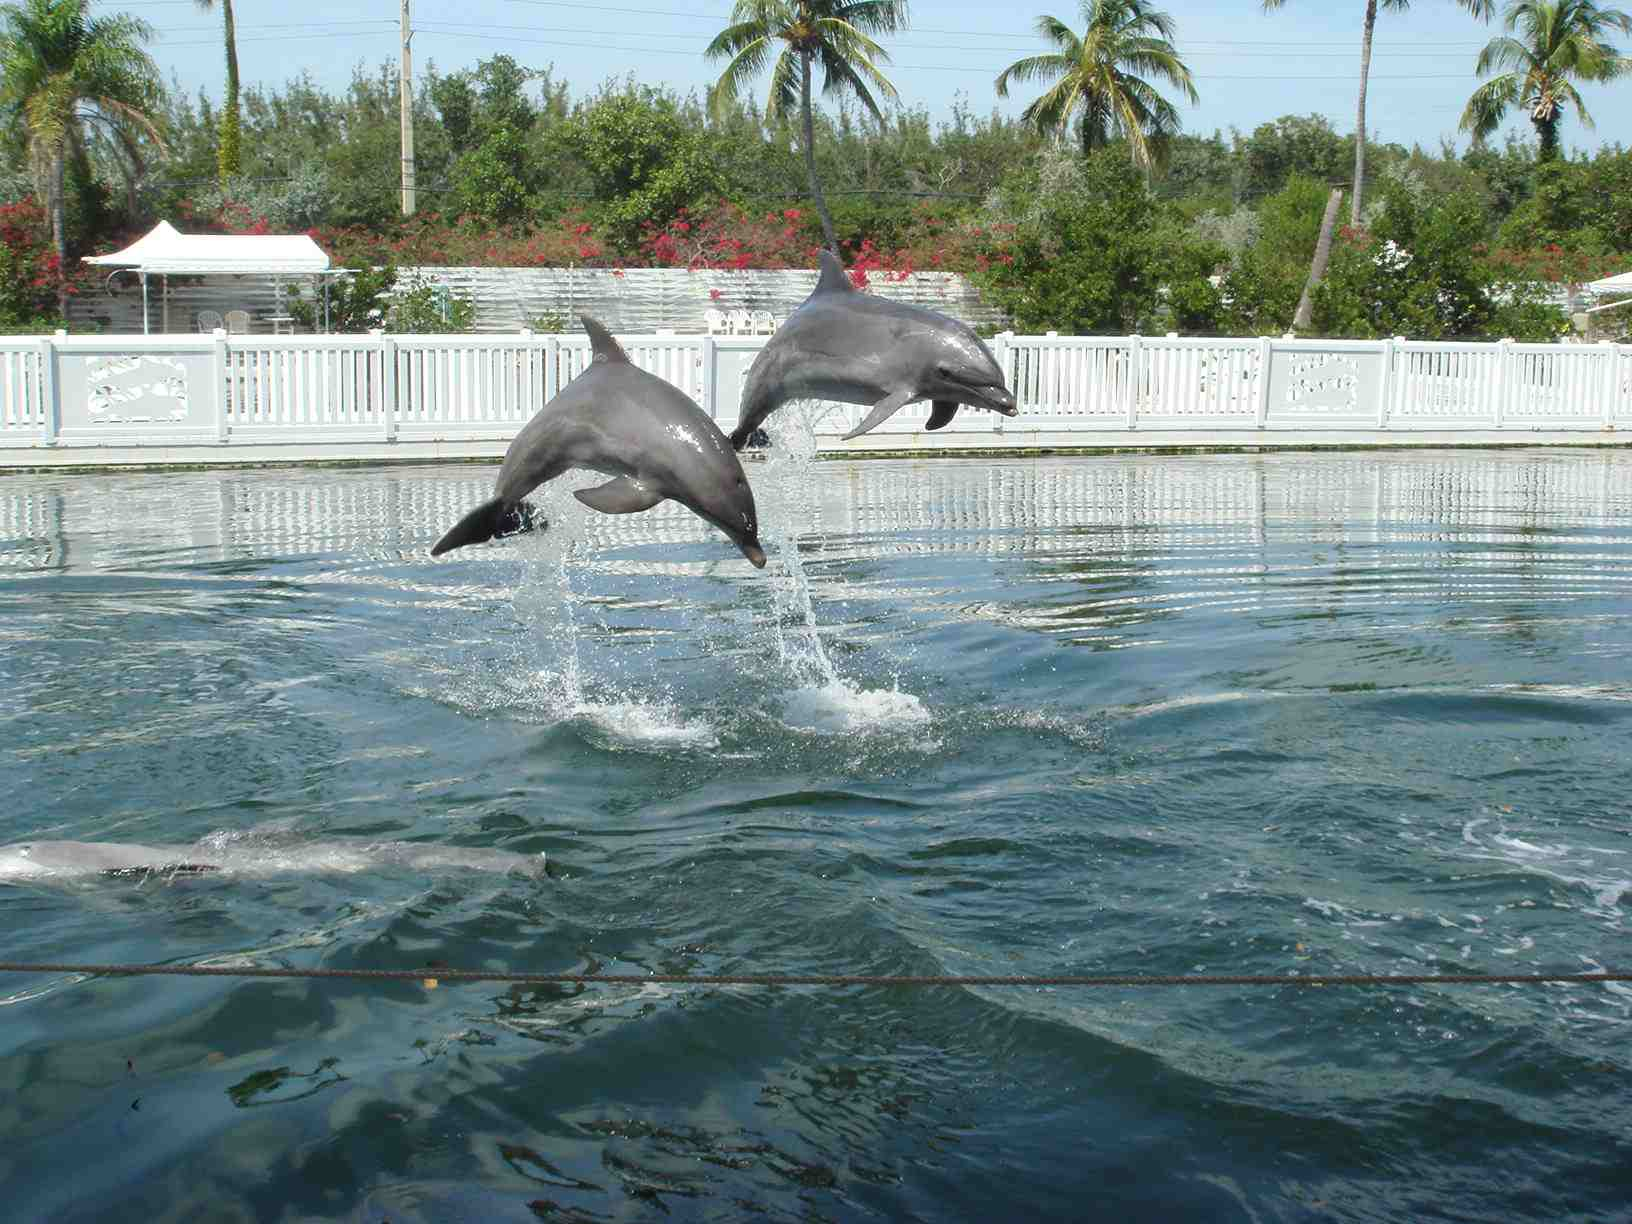 Two dolphins jumping out of the water at Theater of the Sea